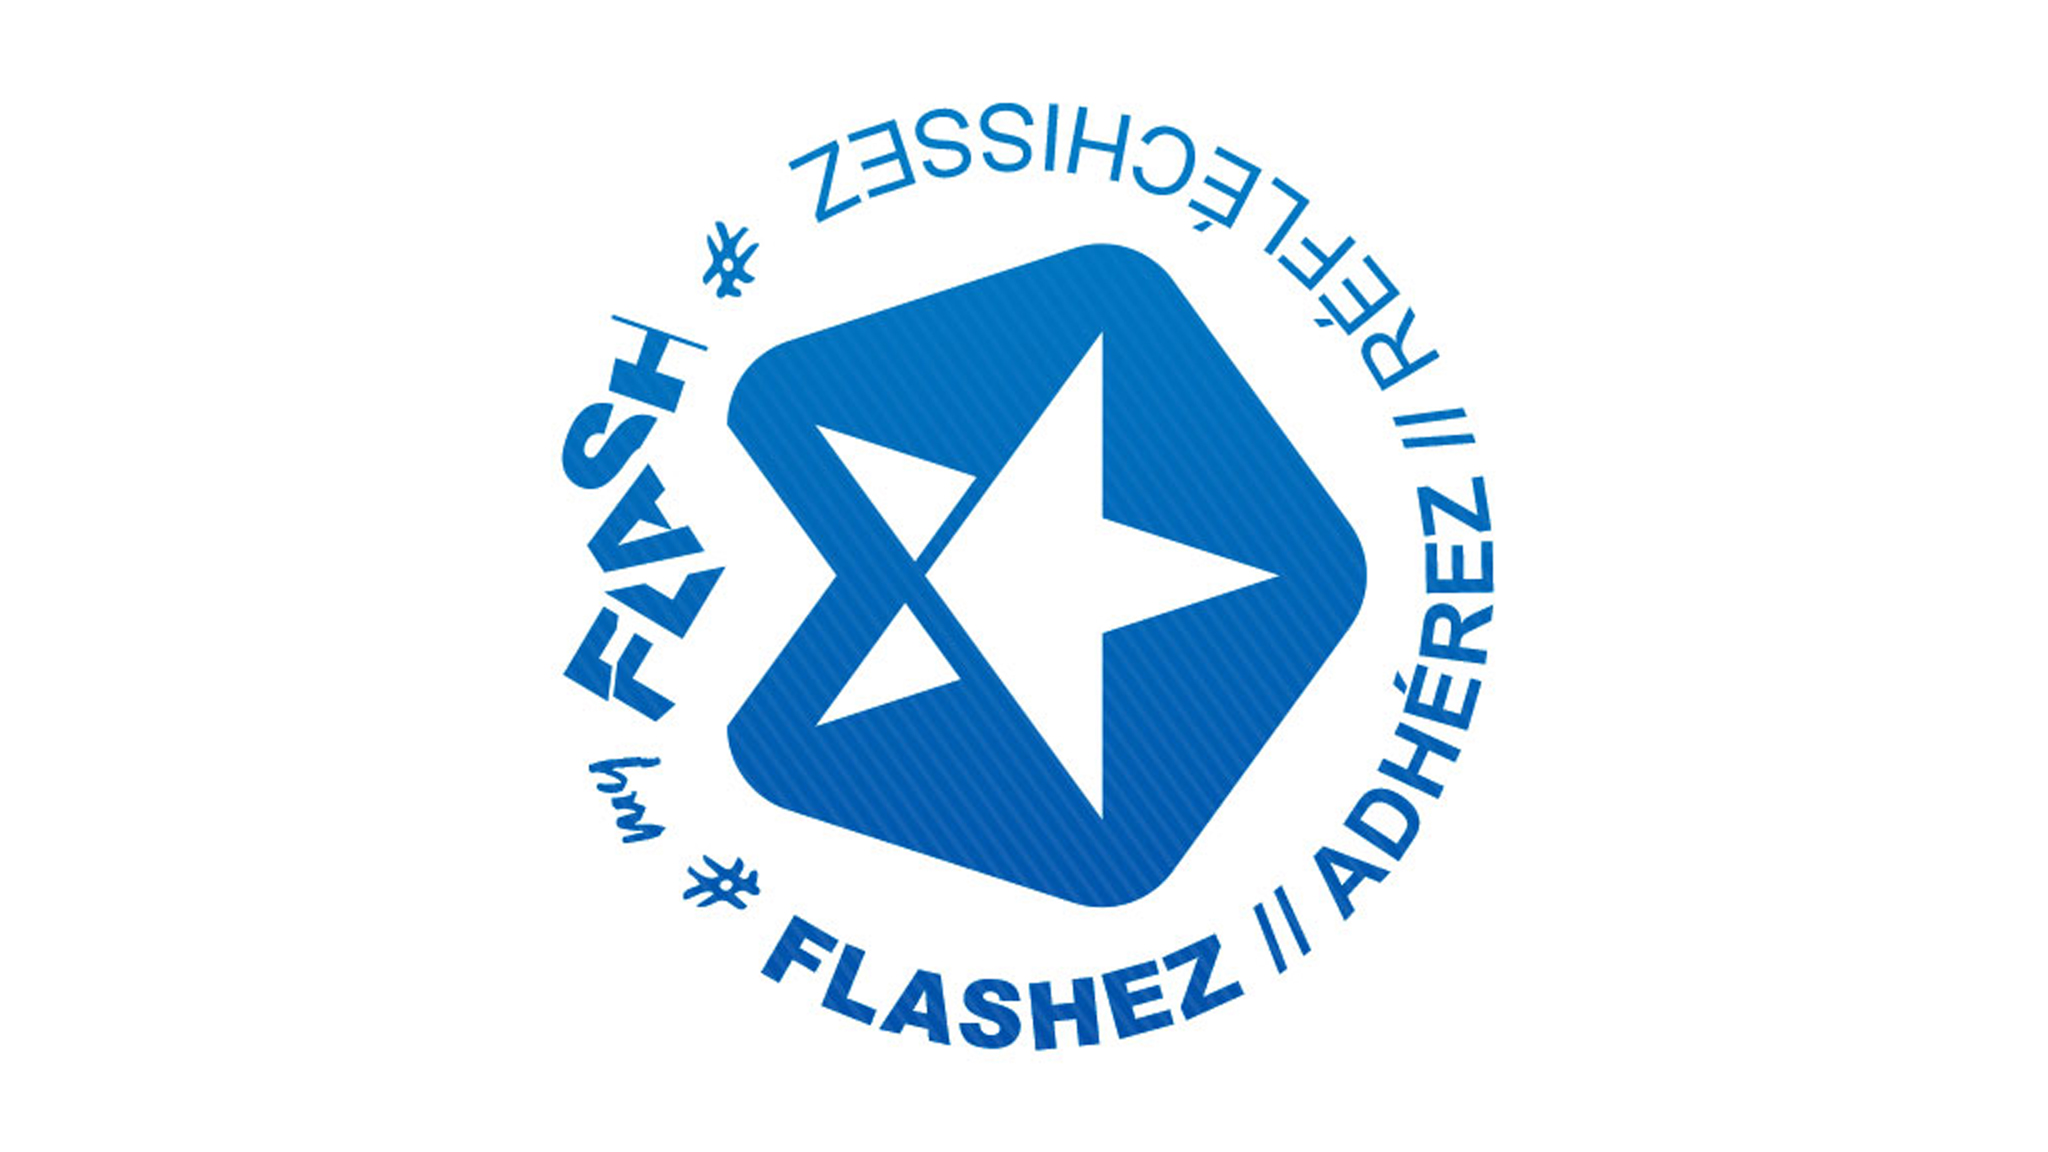 Myflash far